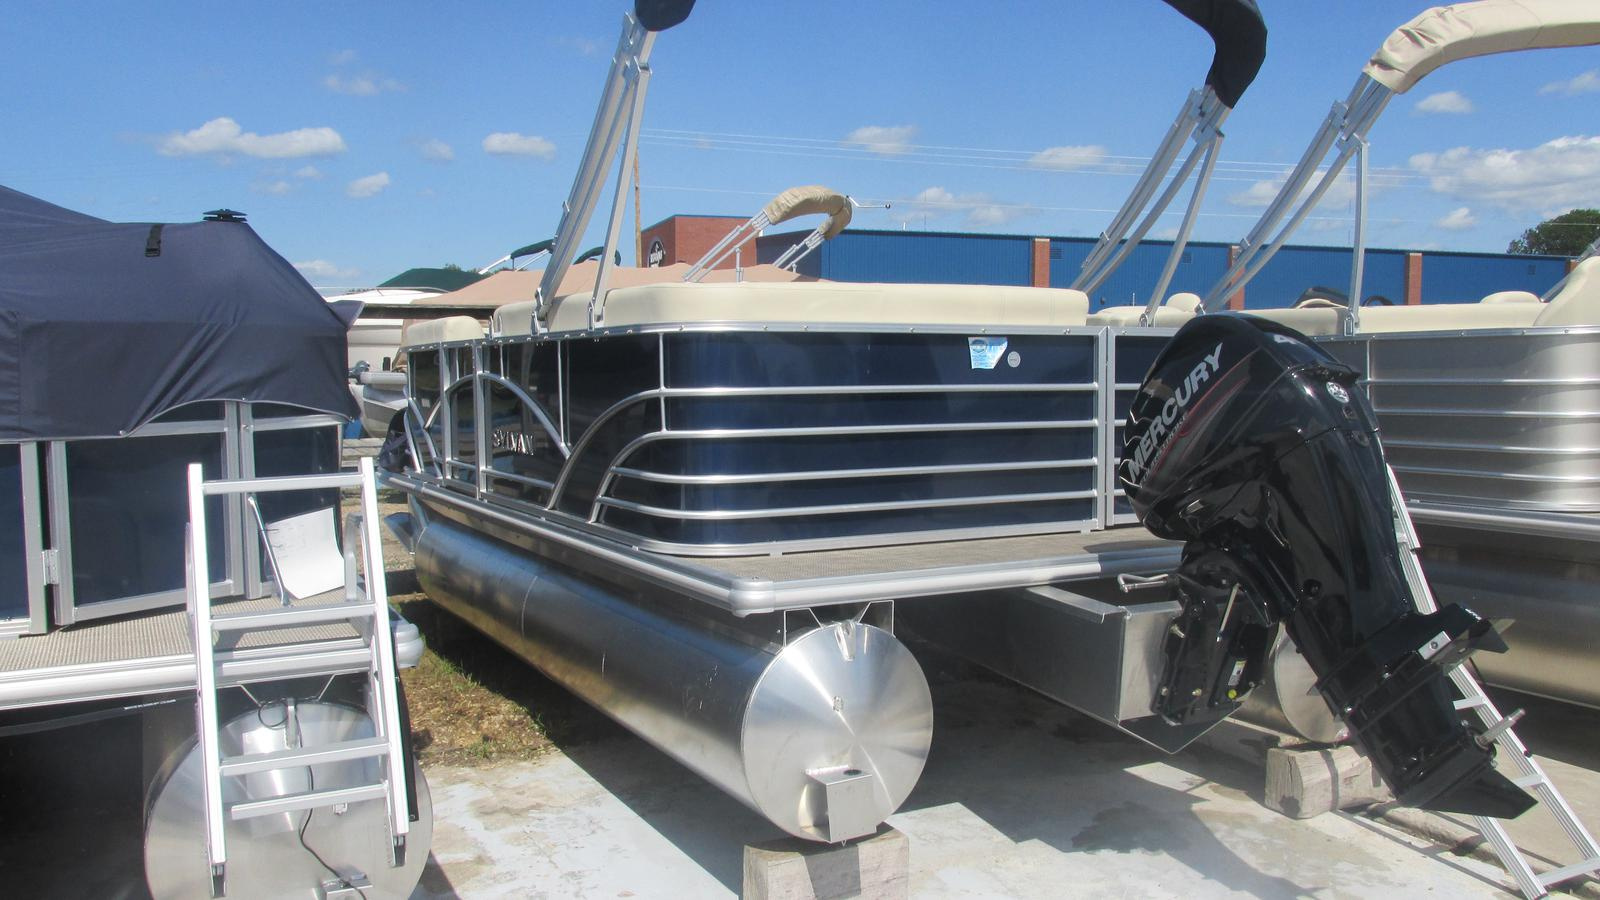 Sylvan mirage 818 cruise pontoon boats for sale for Syvlan